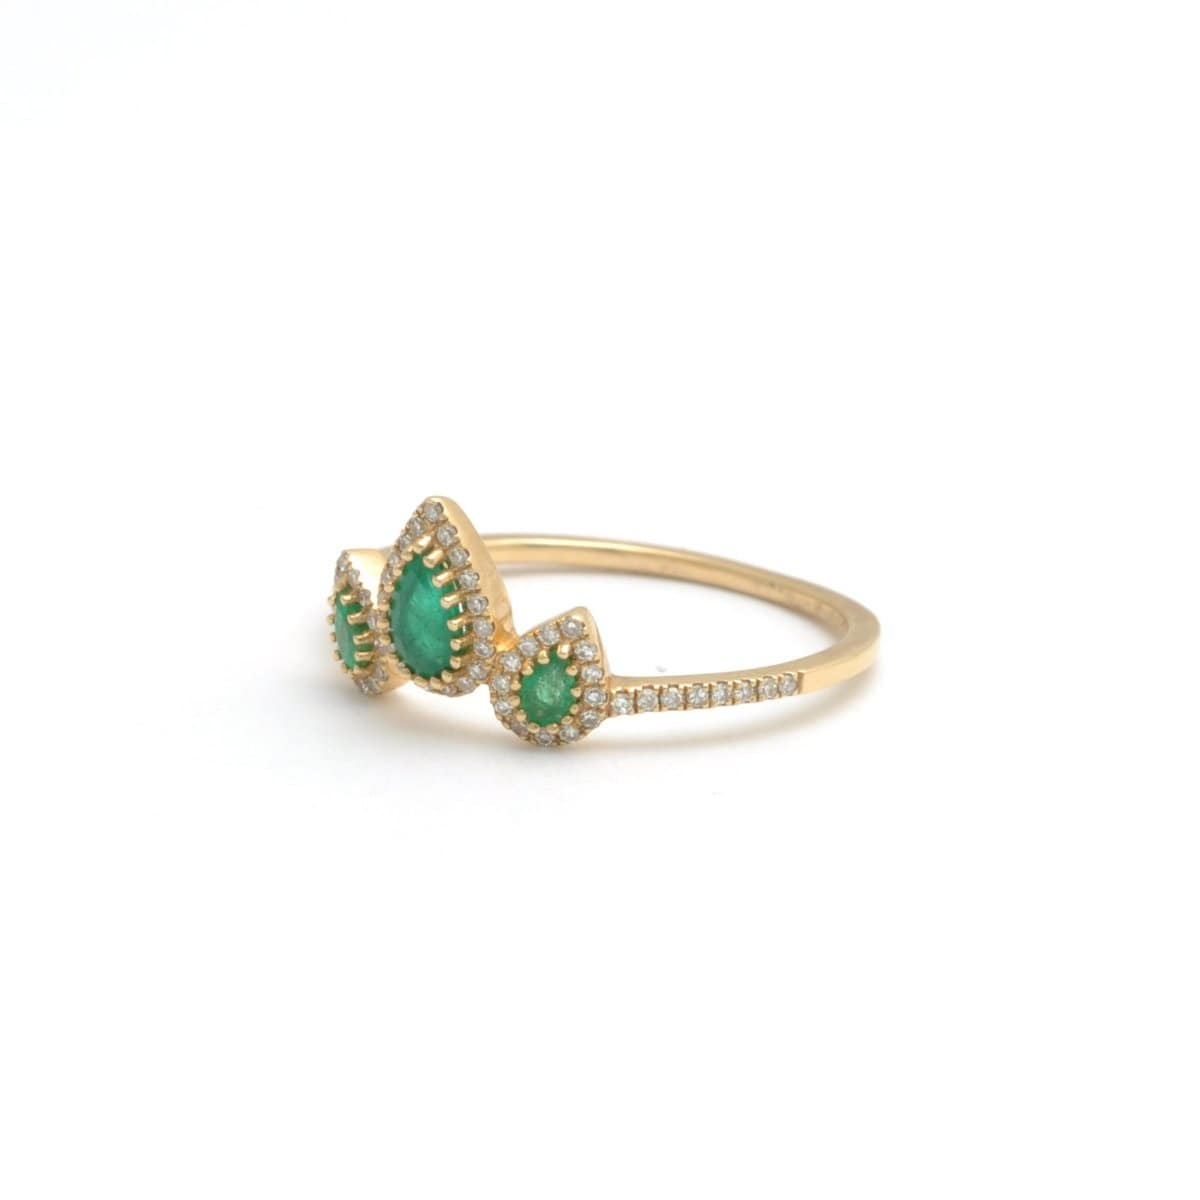 Triple Pear Shape Emerald Diamond Ring - Curated Los Angeles